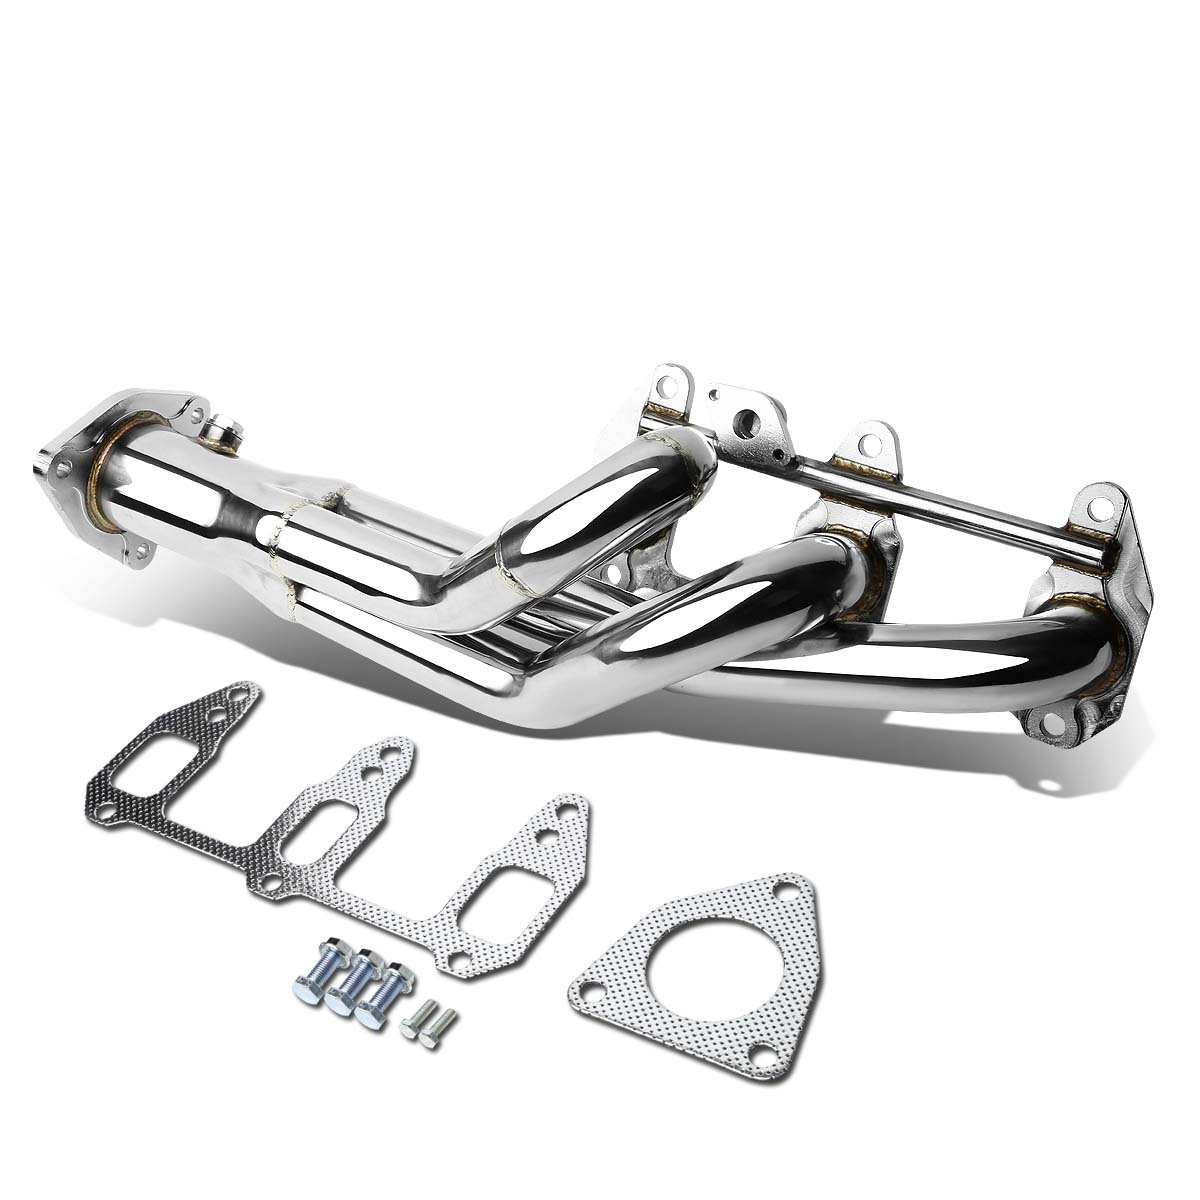 For Mazda RX-8 High Performance 3-1 Design Stainless Steel Exhaust Header Kit